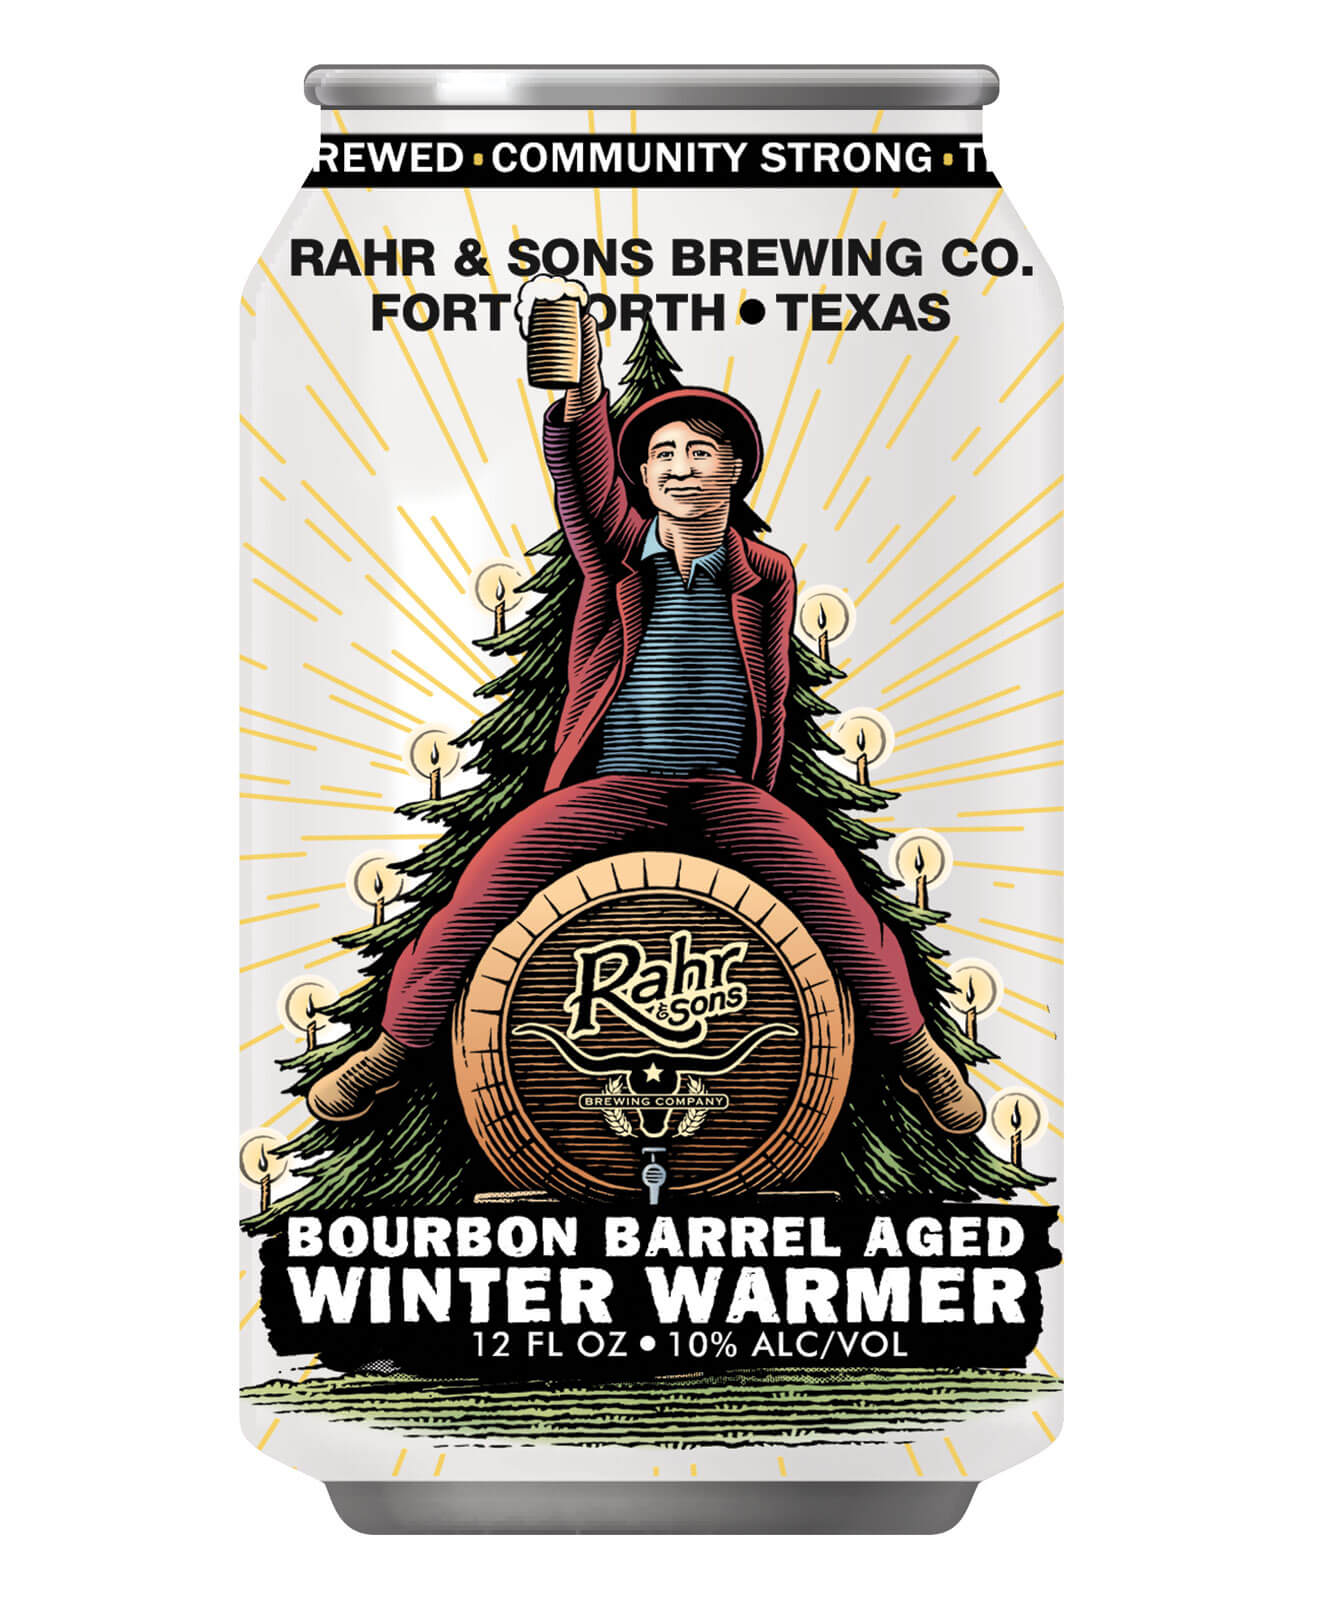 Rahr & Sons Brewing Co. Releases Bourbon Barrel Aged Winter Warmer Aged in Jack Daniel's Barrels, can on white